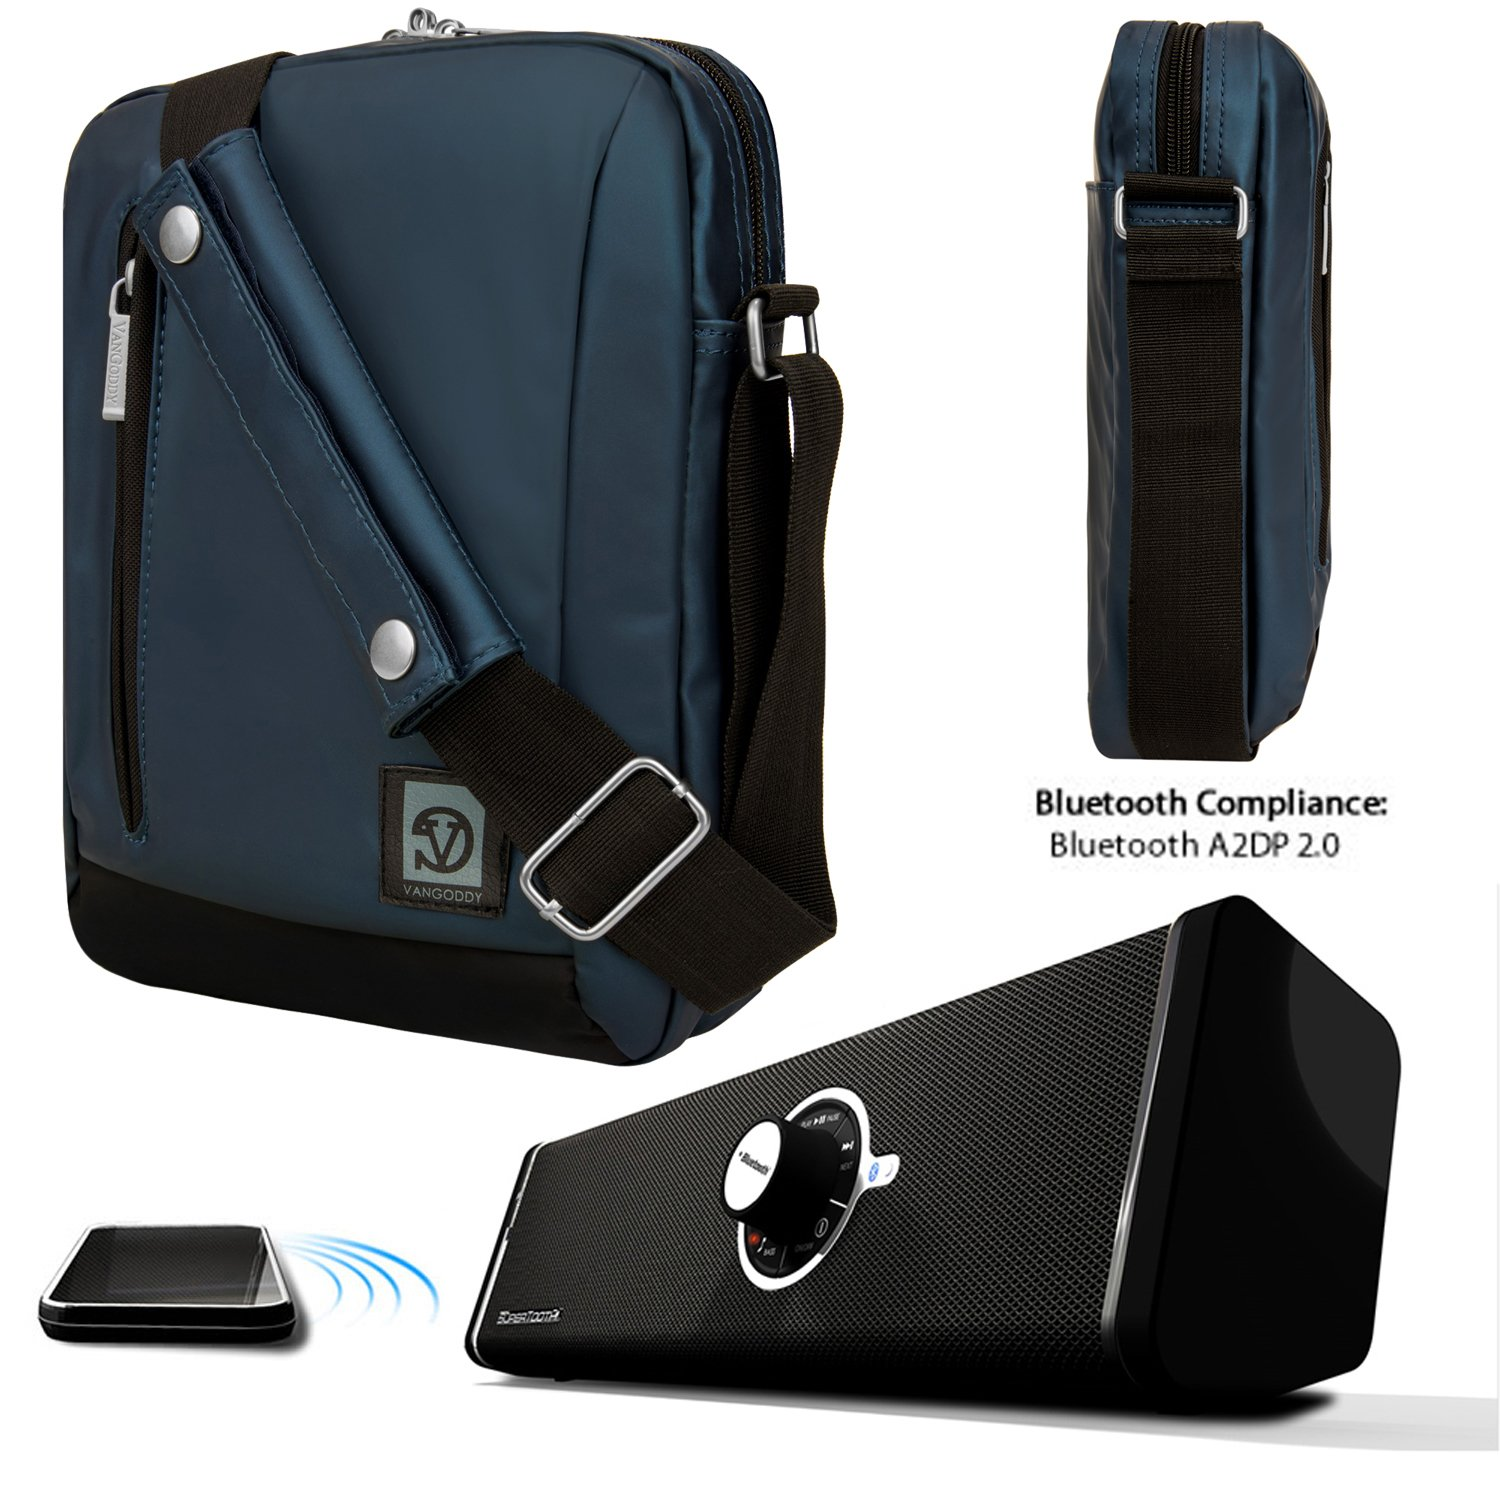 Adler Shoulder Bag Travel Case For Acer Iconia 7 A1-724 7.9-inch Tablet / Phablet + Bluetooth Speaker by Vangoddy